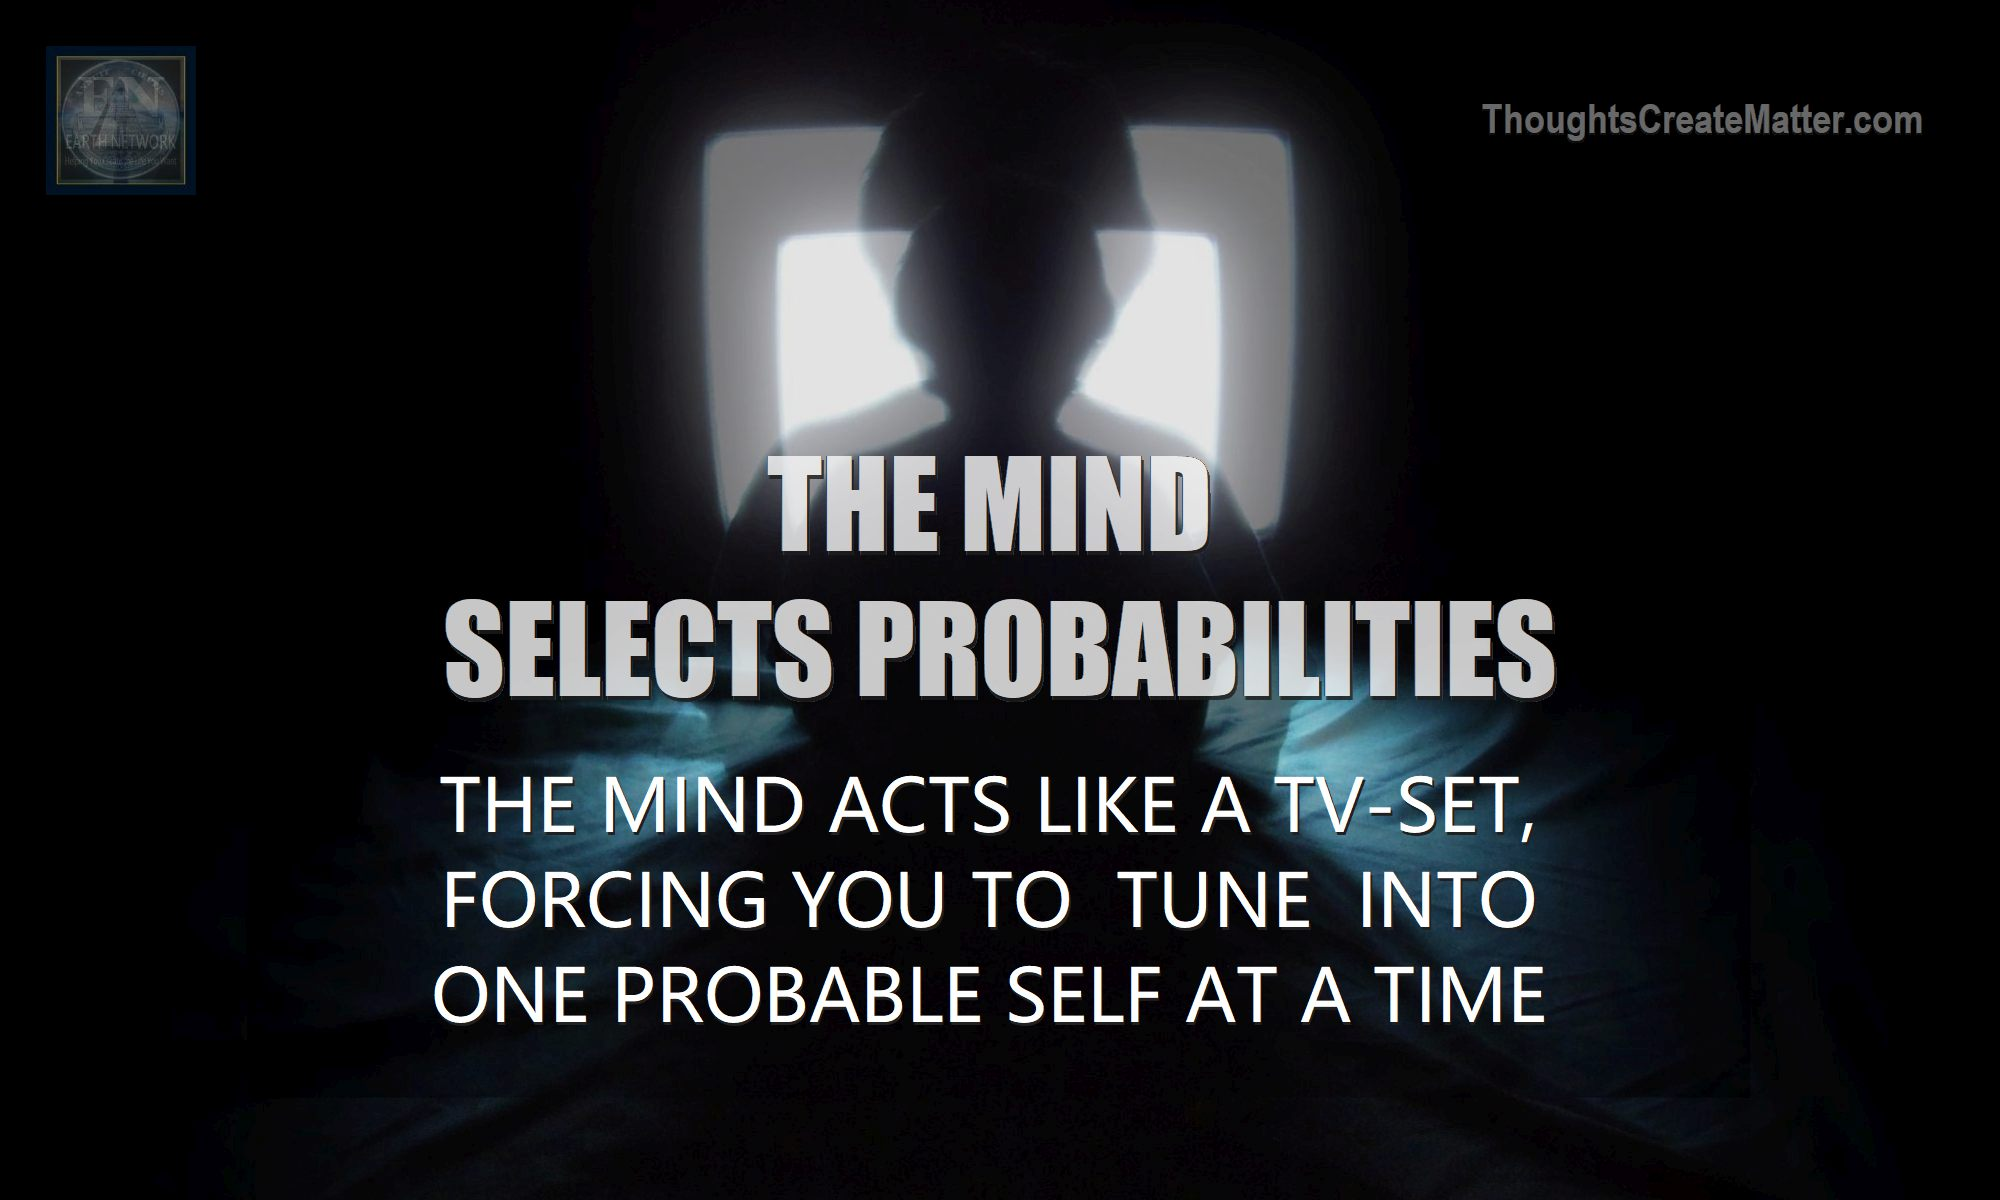 Child watching tv depicts how the mind selects probabilities and probable selves